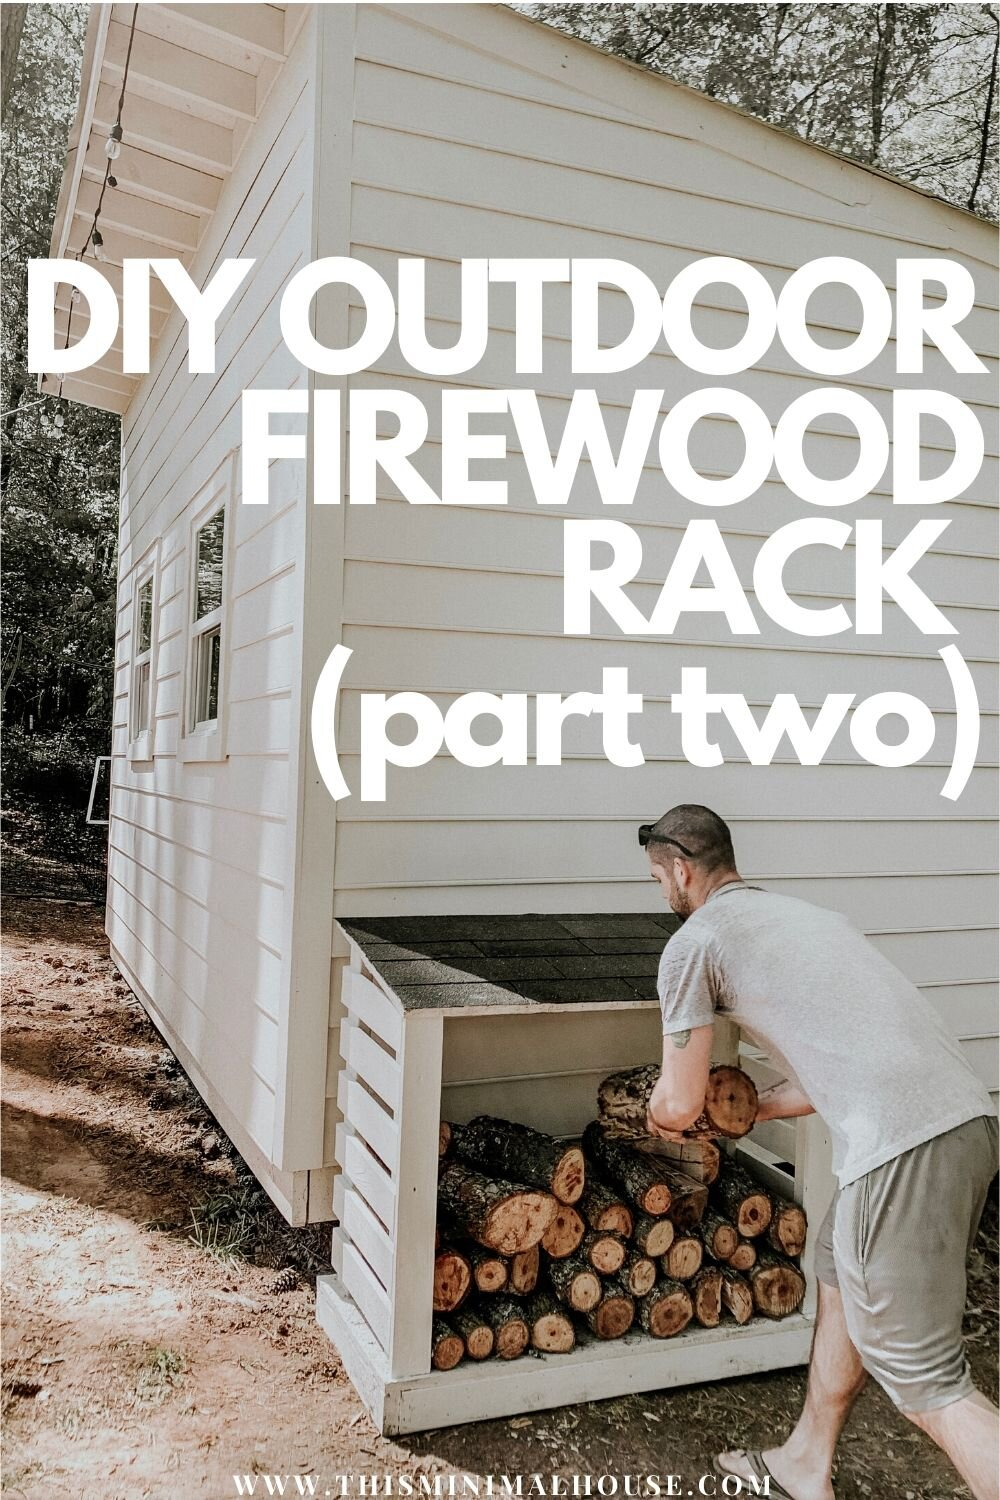 Build a firewood rack using scrap wood!